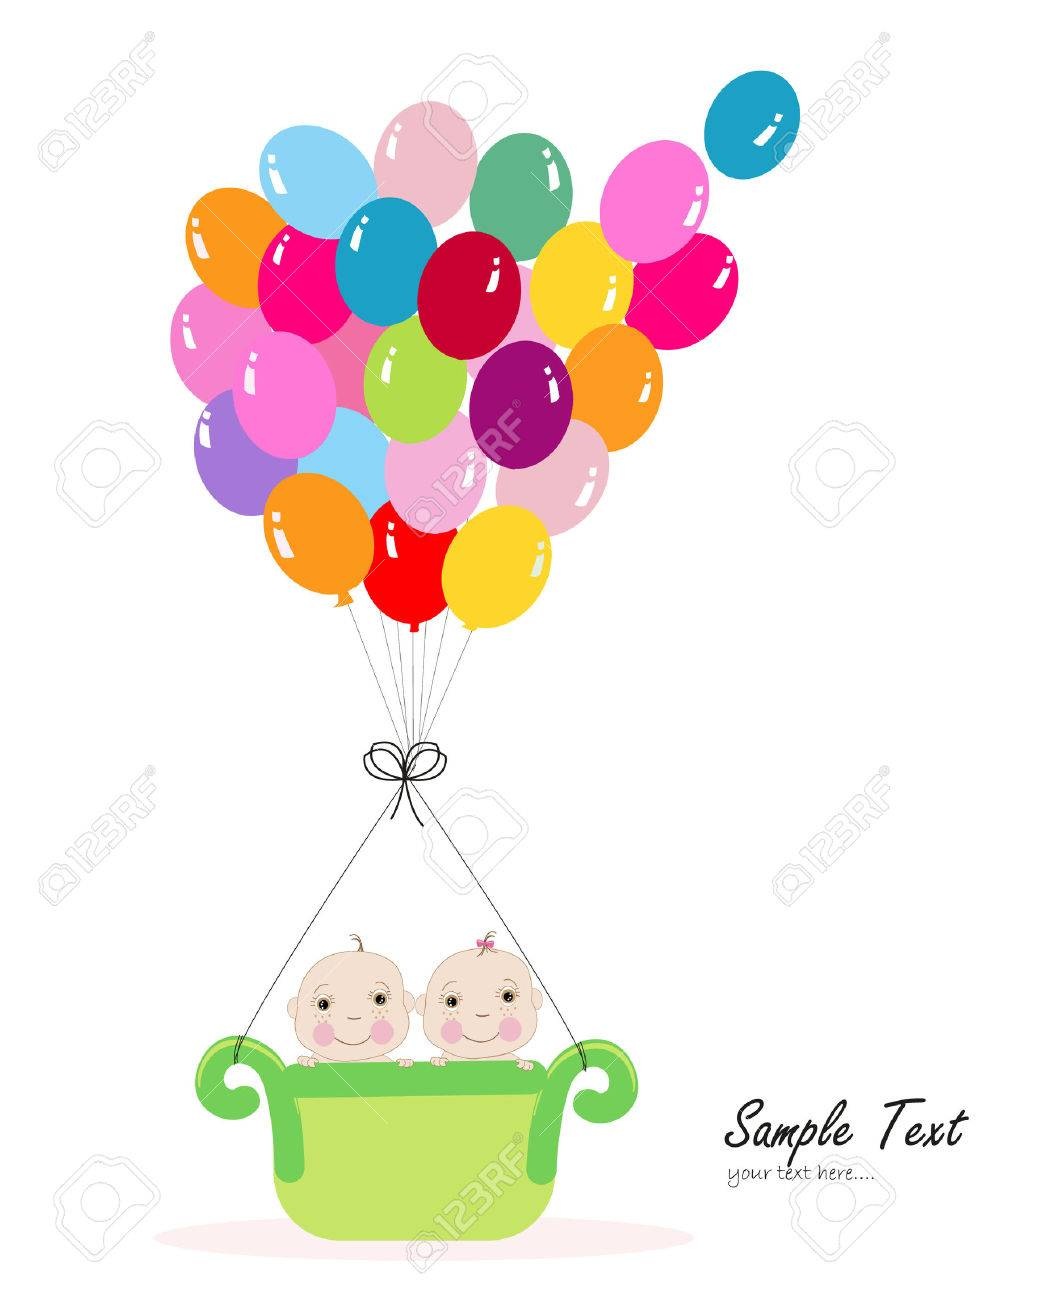 Twin Baby With Colorful Balloon Baby Shower Greeting Card Royalty